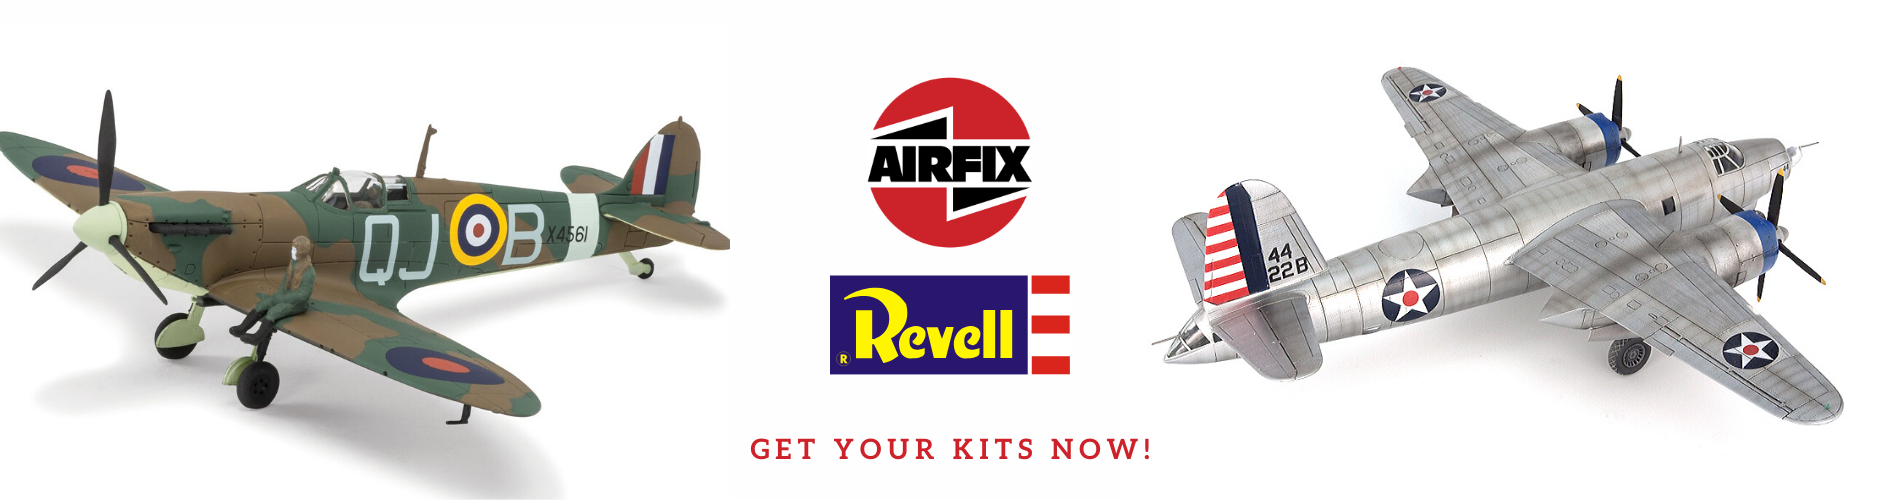 banner-ams-revell-and-airfix.png